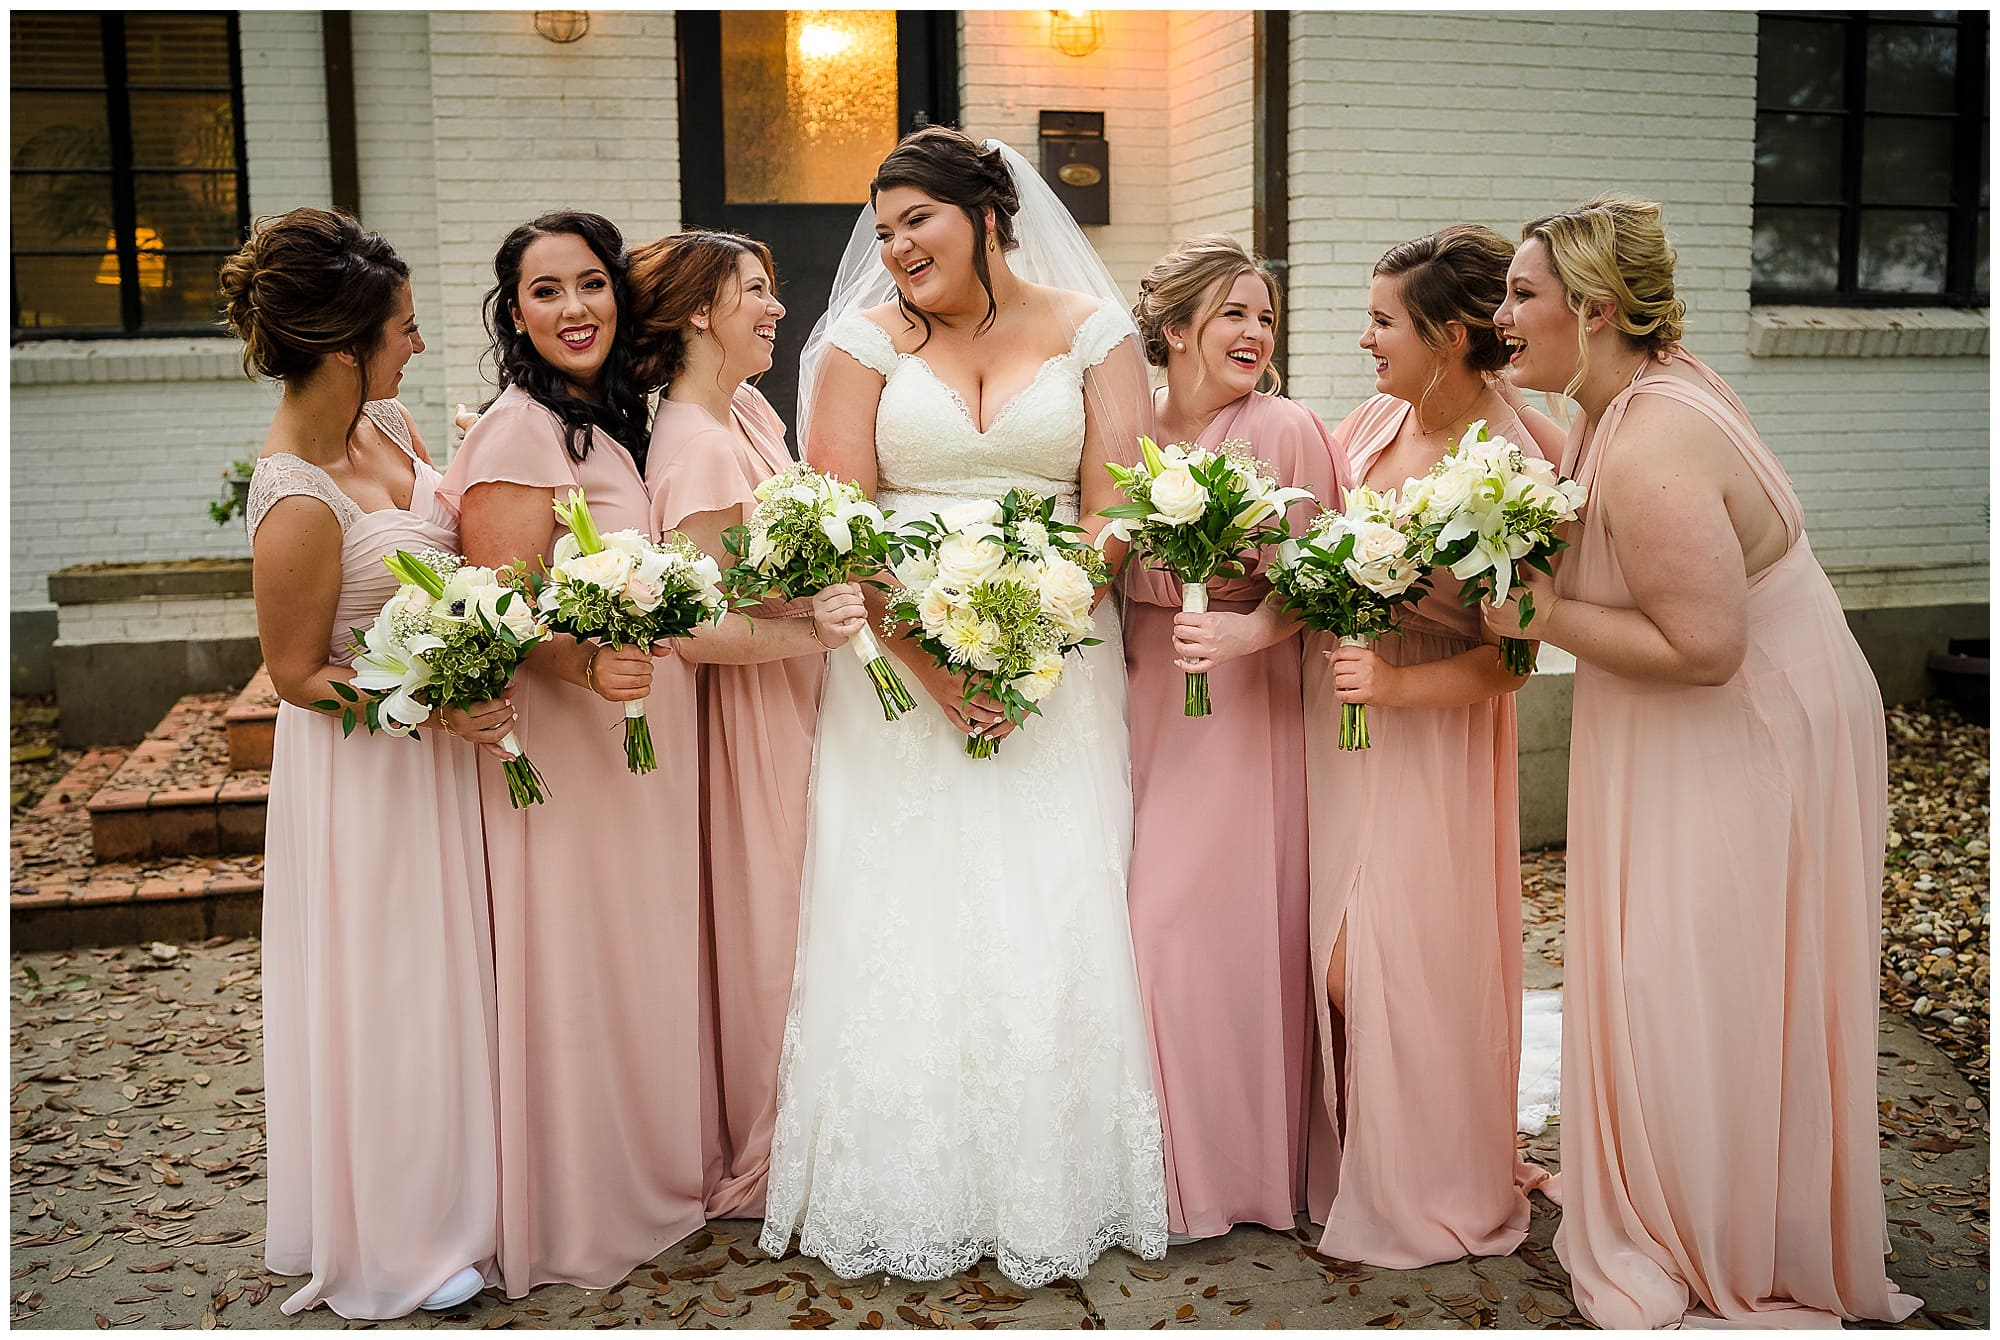 bride and bridesmaids laughing in front of house